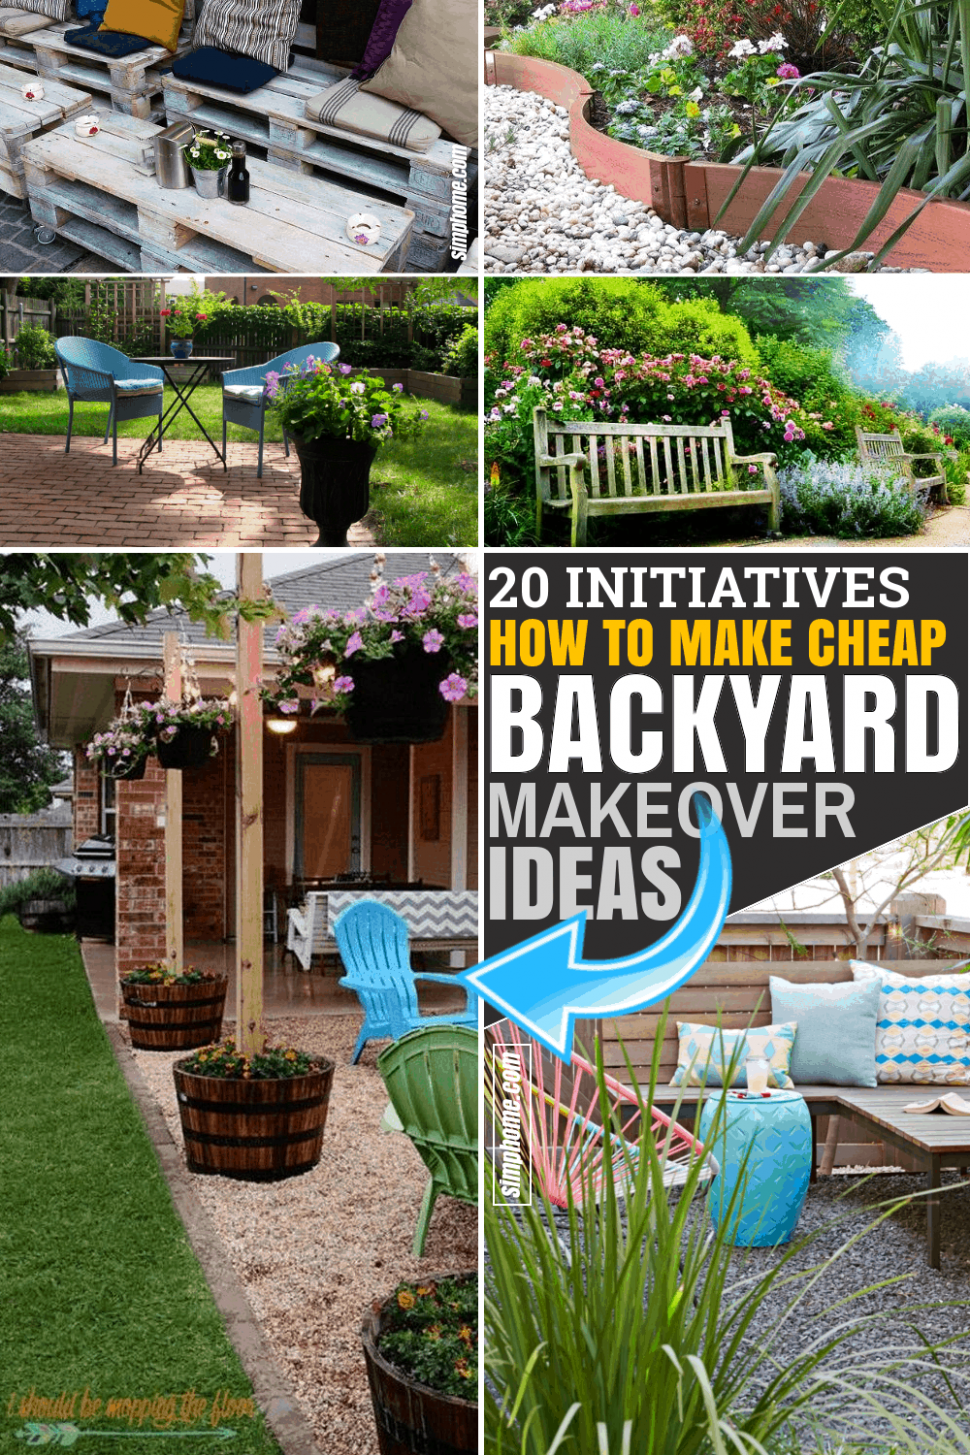 10 Initiatives of Cheap Backyard Makeover Ideas - Simphome